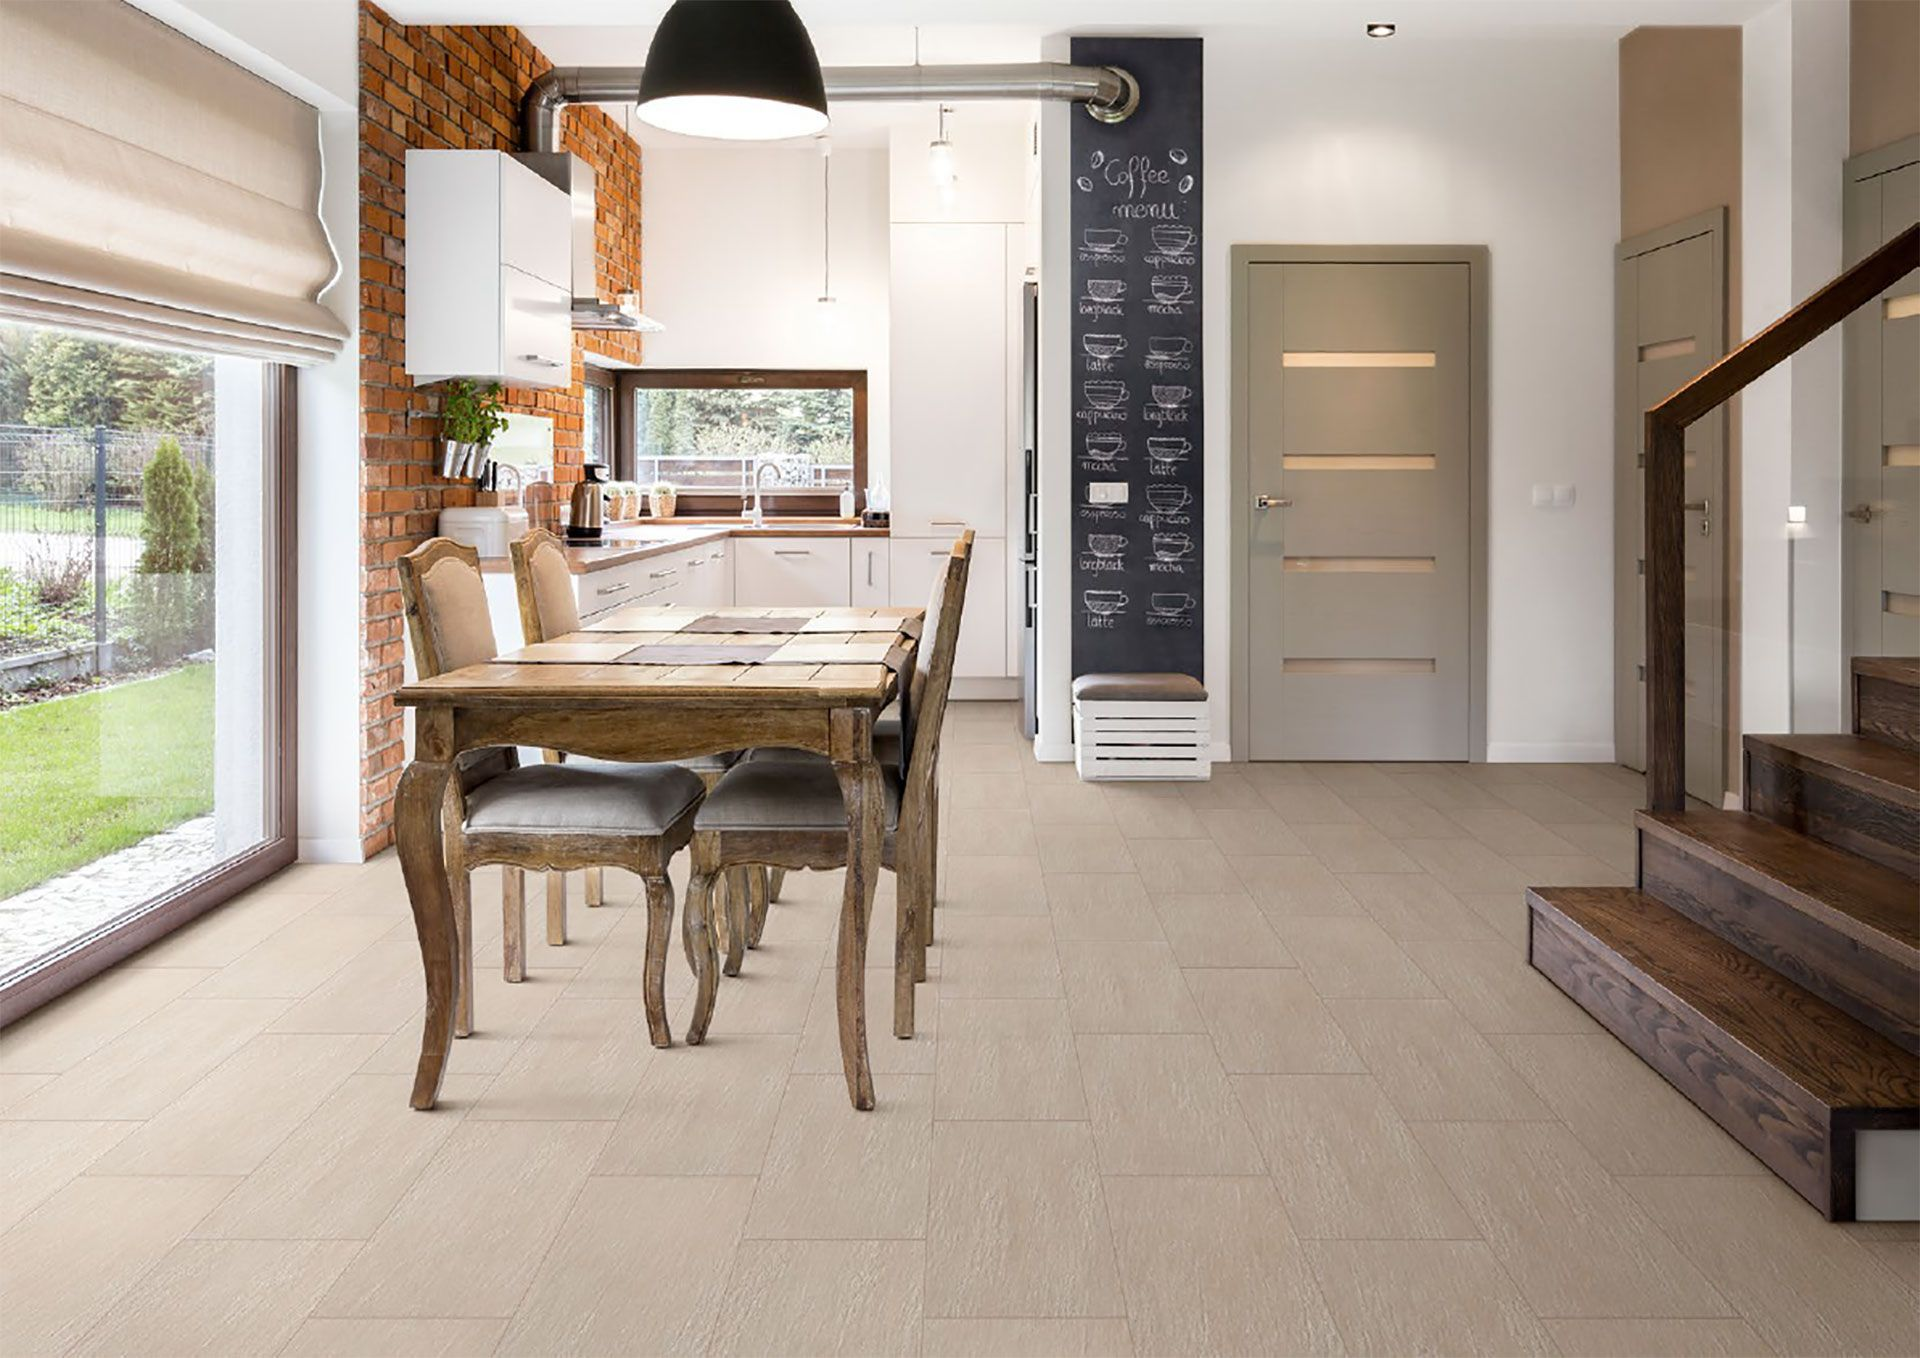 Iris Ceramic Group Porcelain Covers Surfaces In The Home, Combining